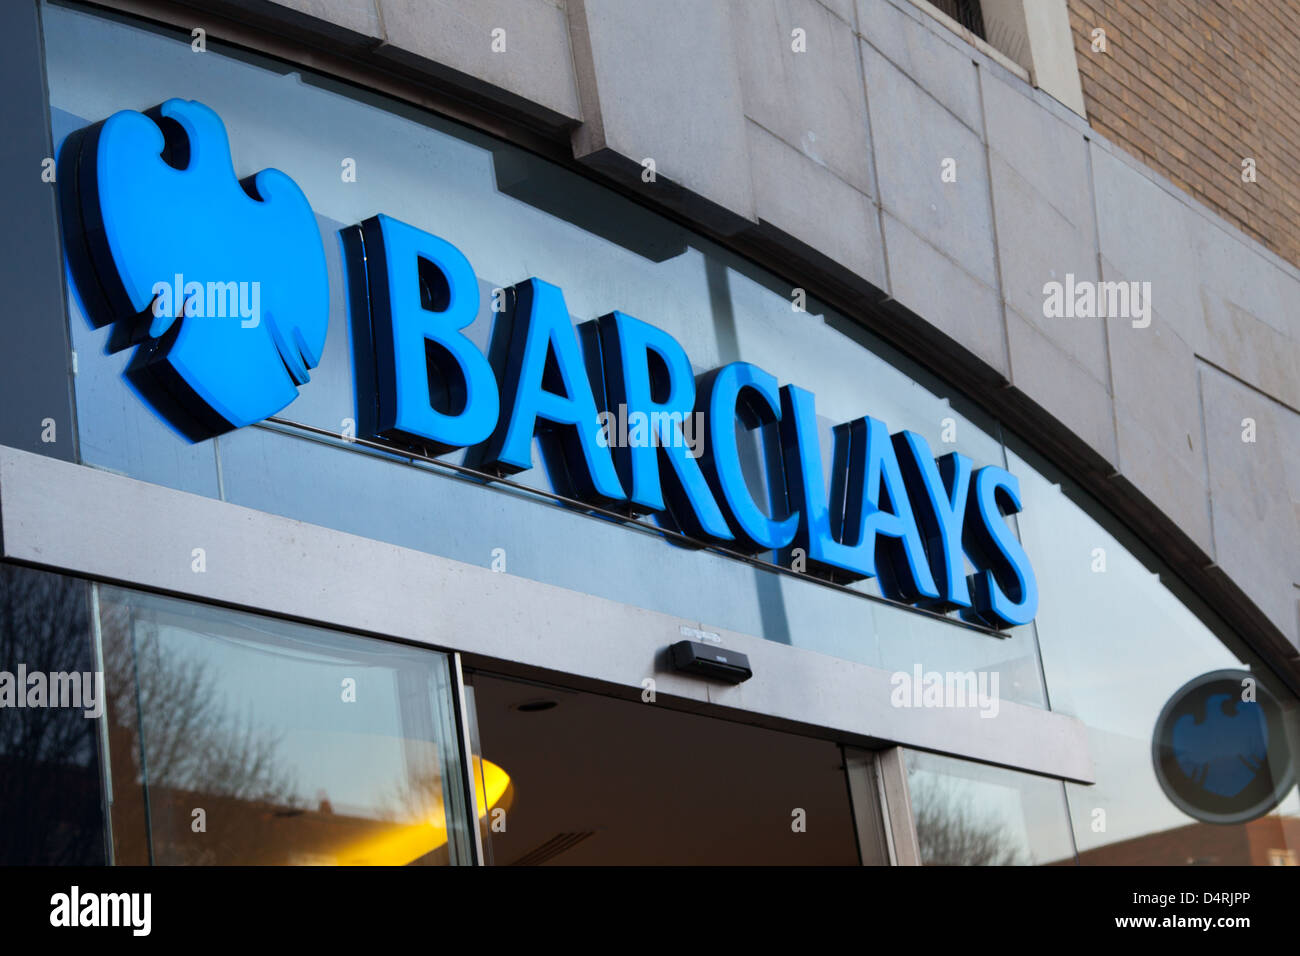 A general view of the Barclays bank logo at the Above Bar Street branch in Southampton Stock Photo